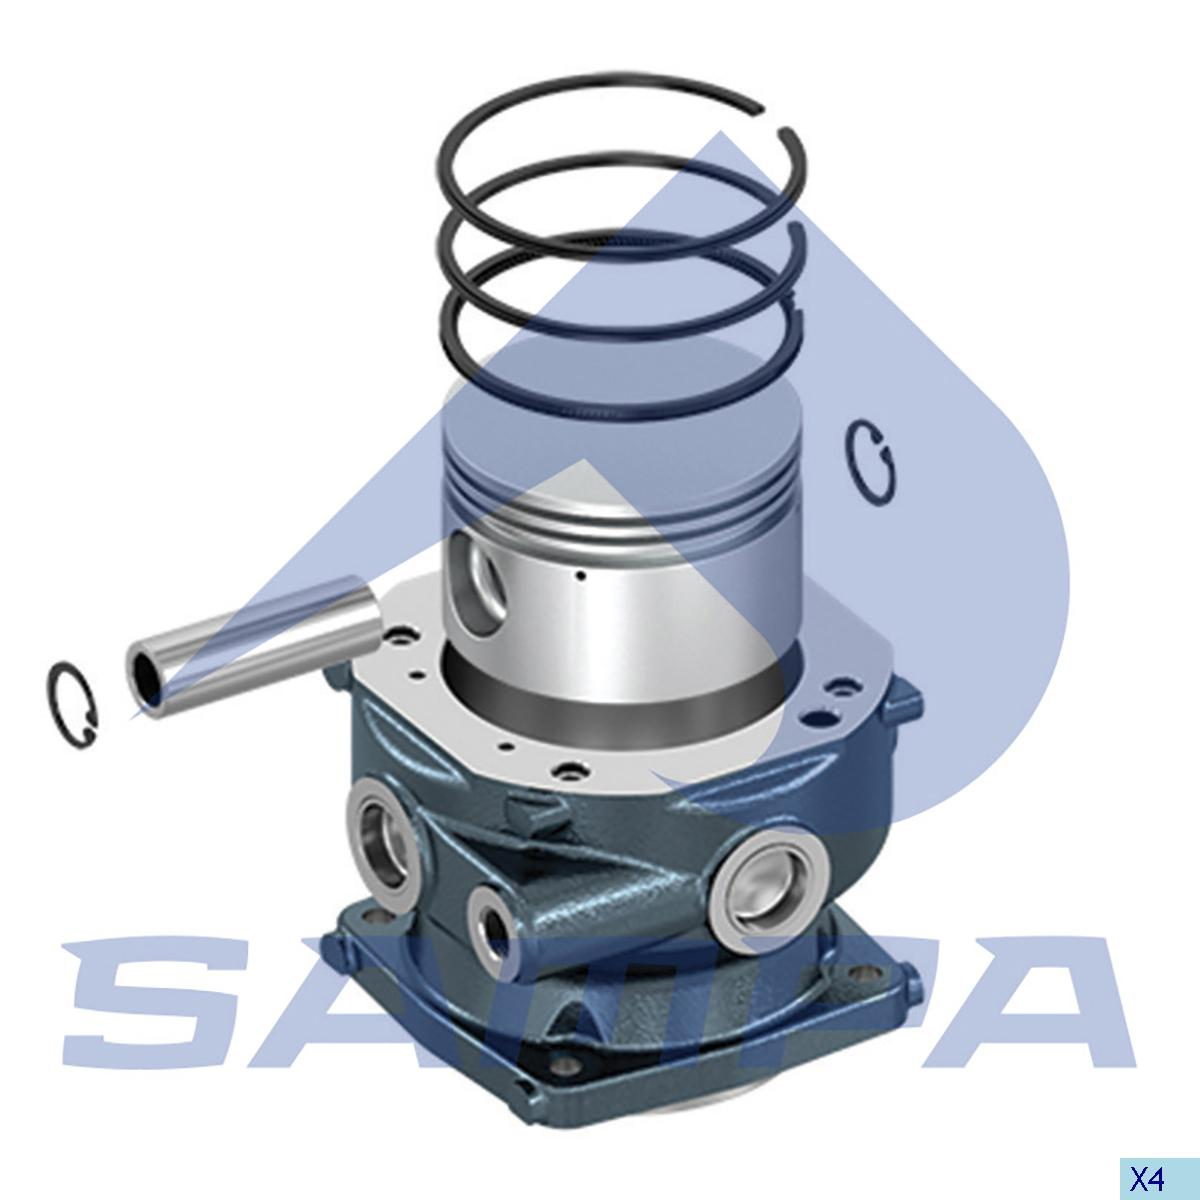 Cylinder Liner & Piston With Rings, Piston, Man, Compressed Air System